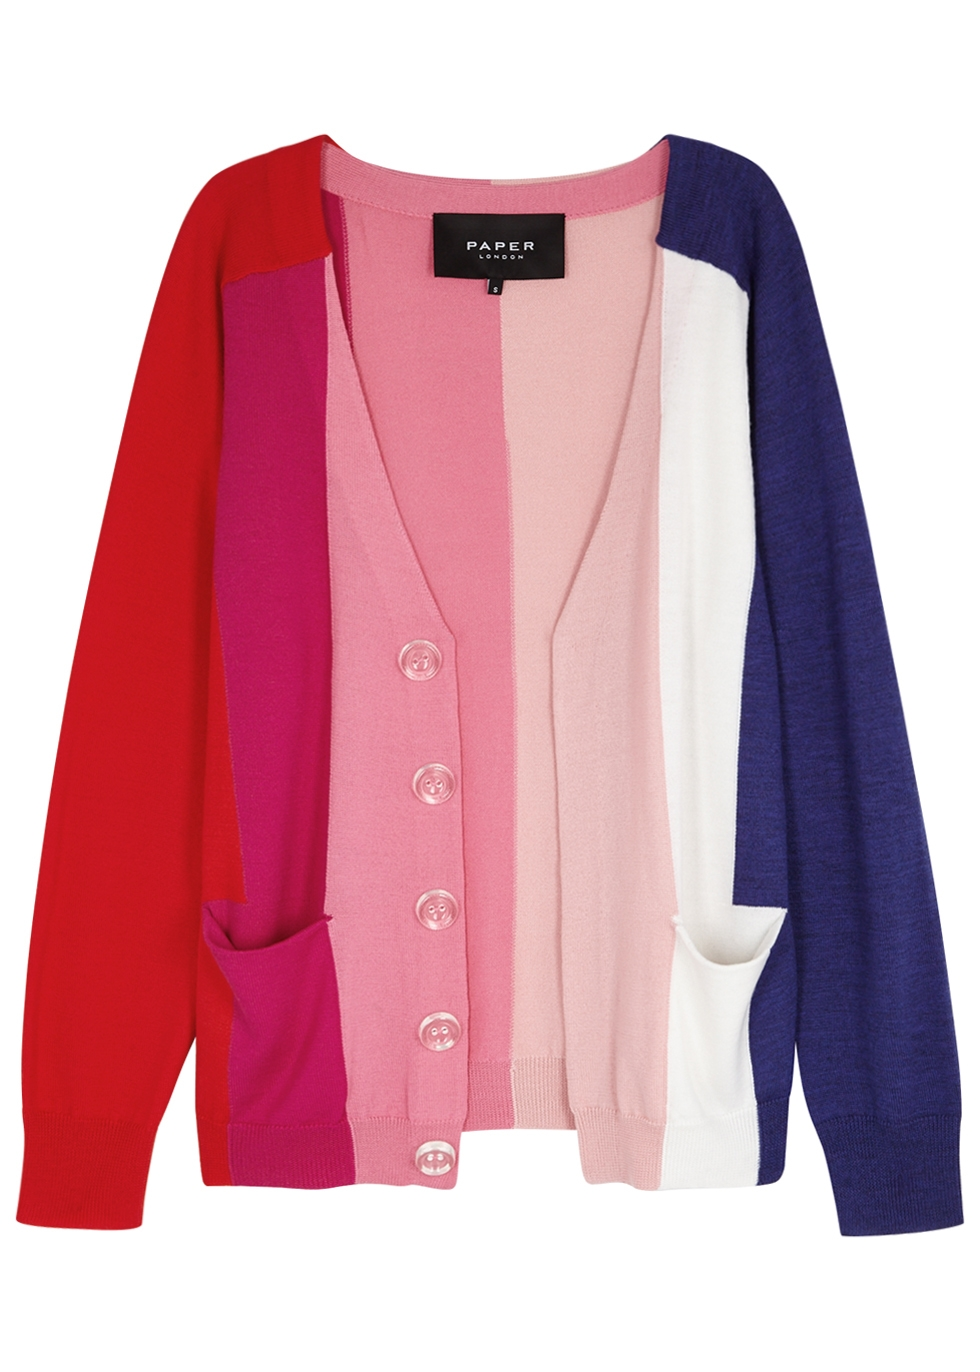 PAPER LONDON DOLLY COLOUR-BLOCK WOOL CARDIGAN